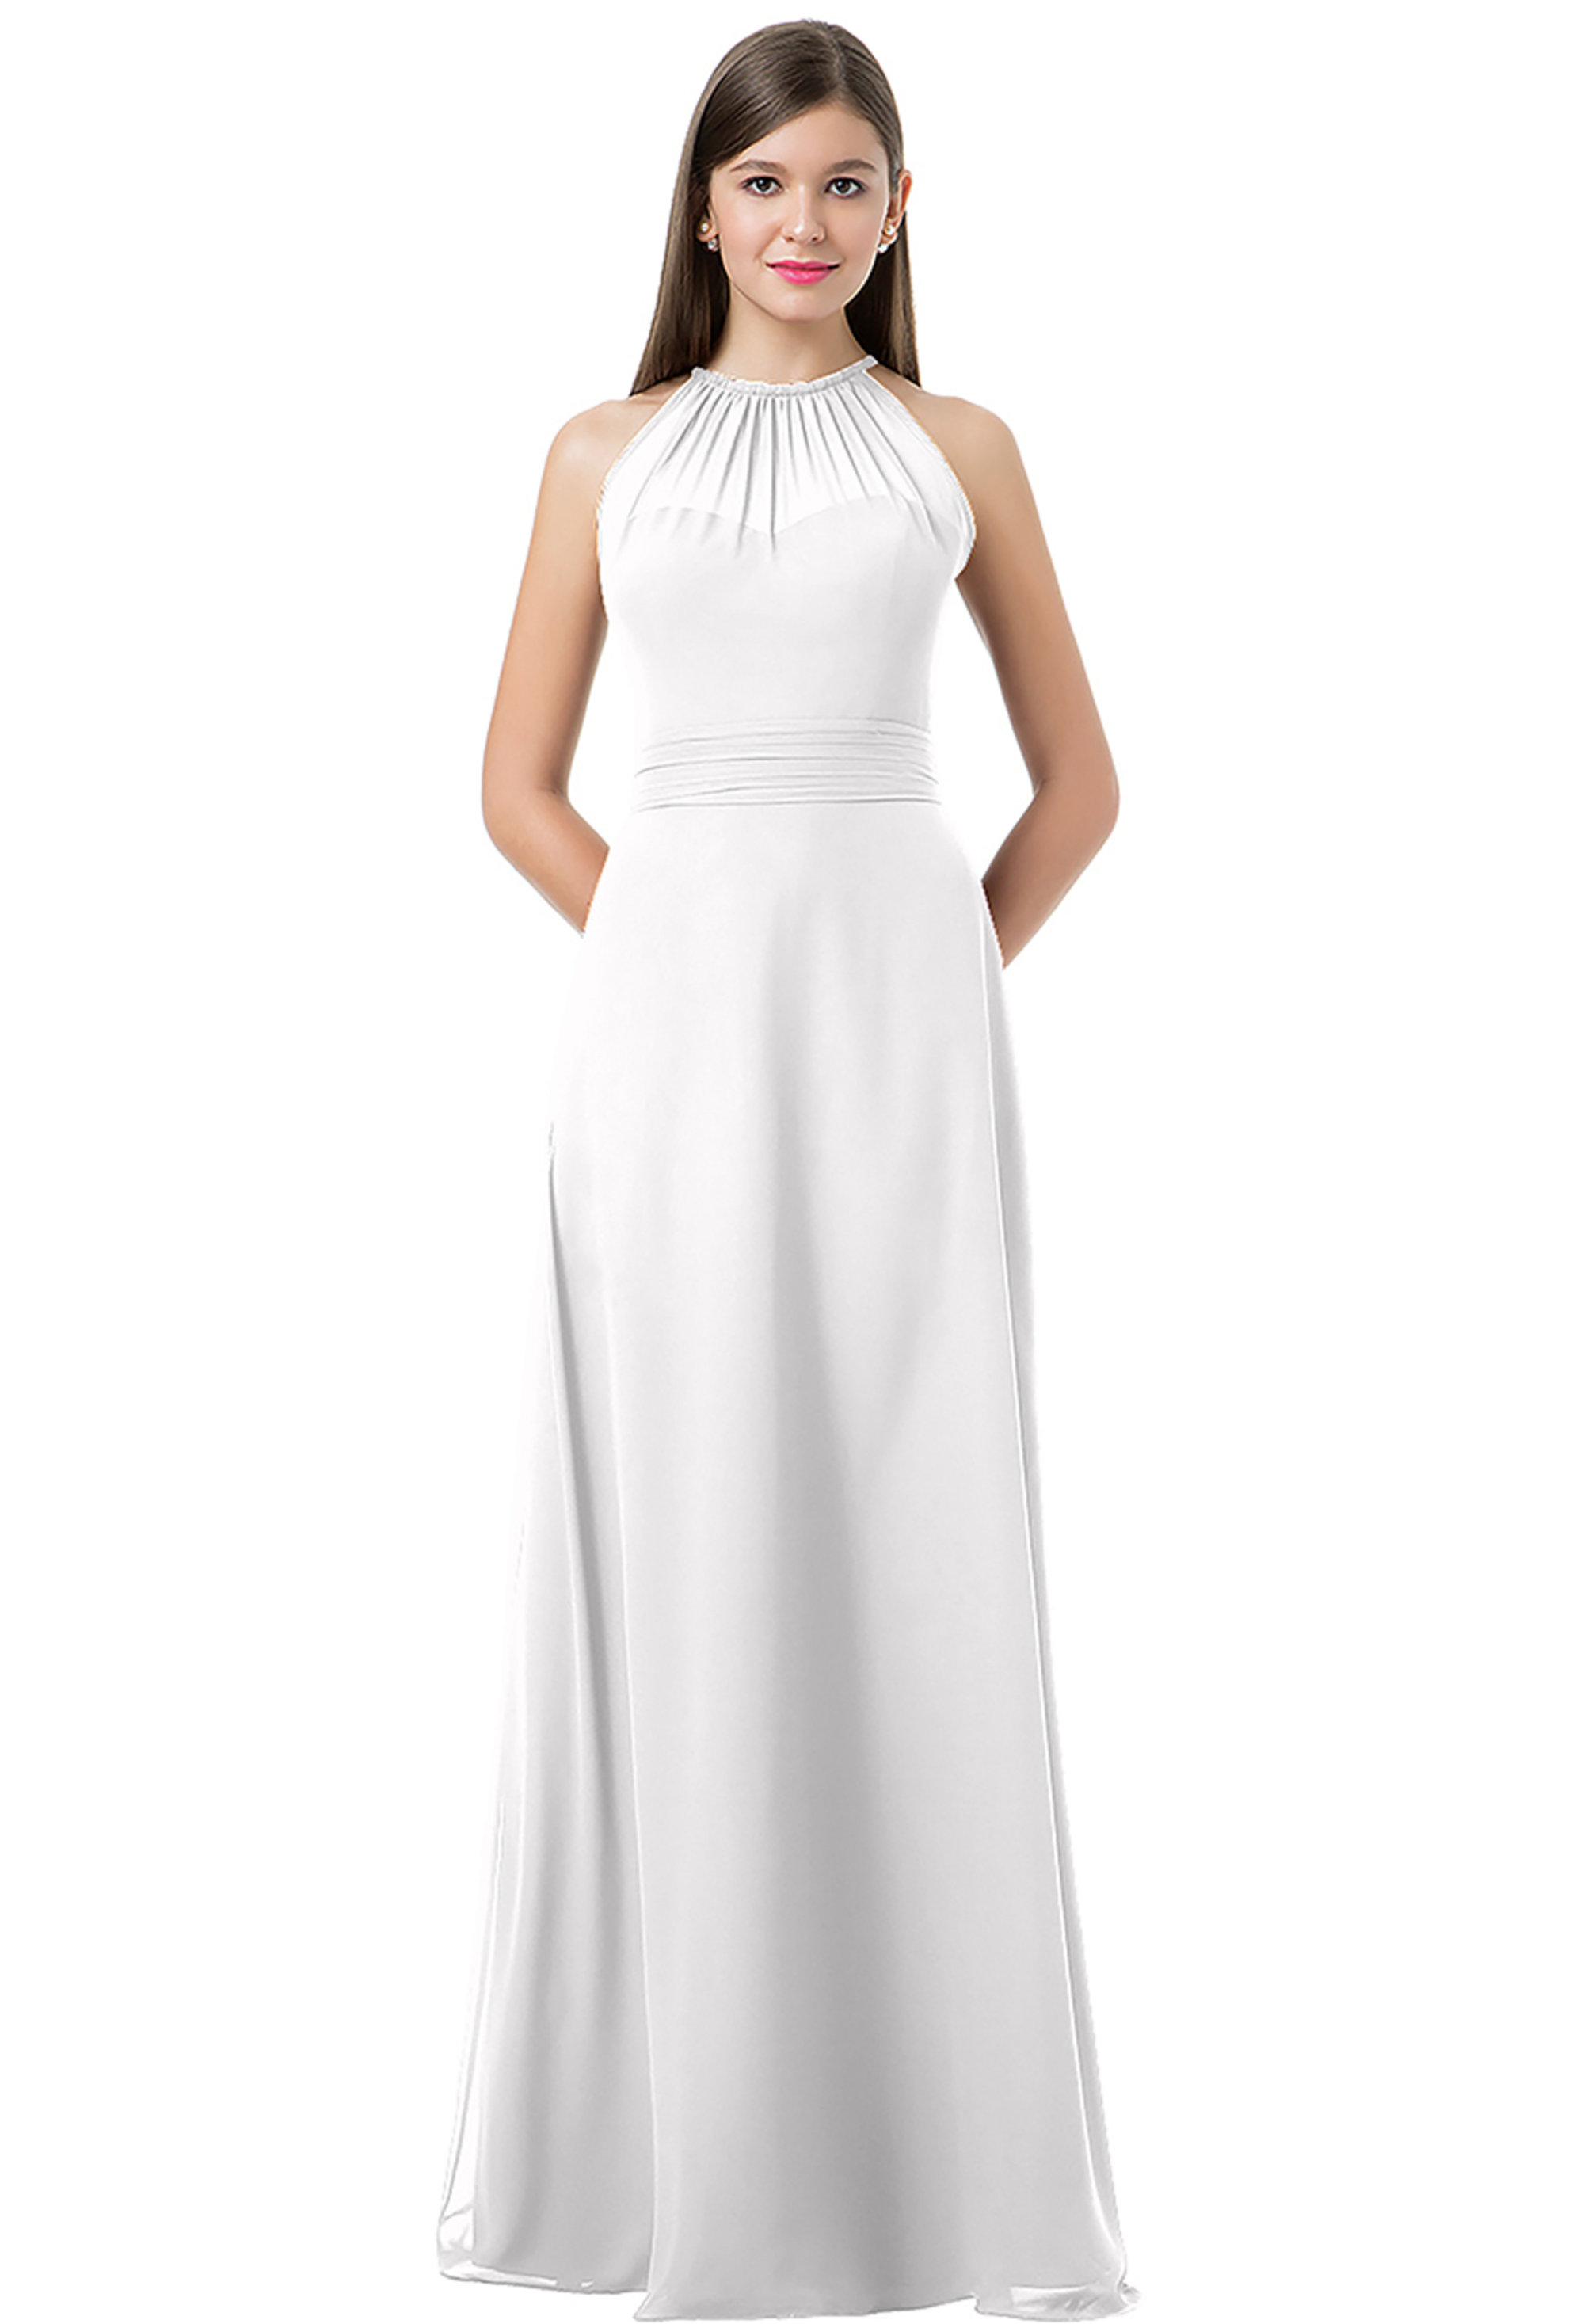 Bill Levkoff WHITE Chiffon Spaghetti Tie A-line gown, $220.00 Front